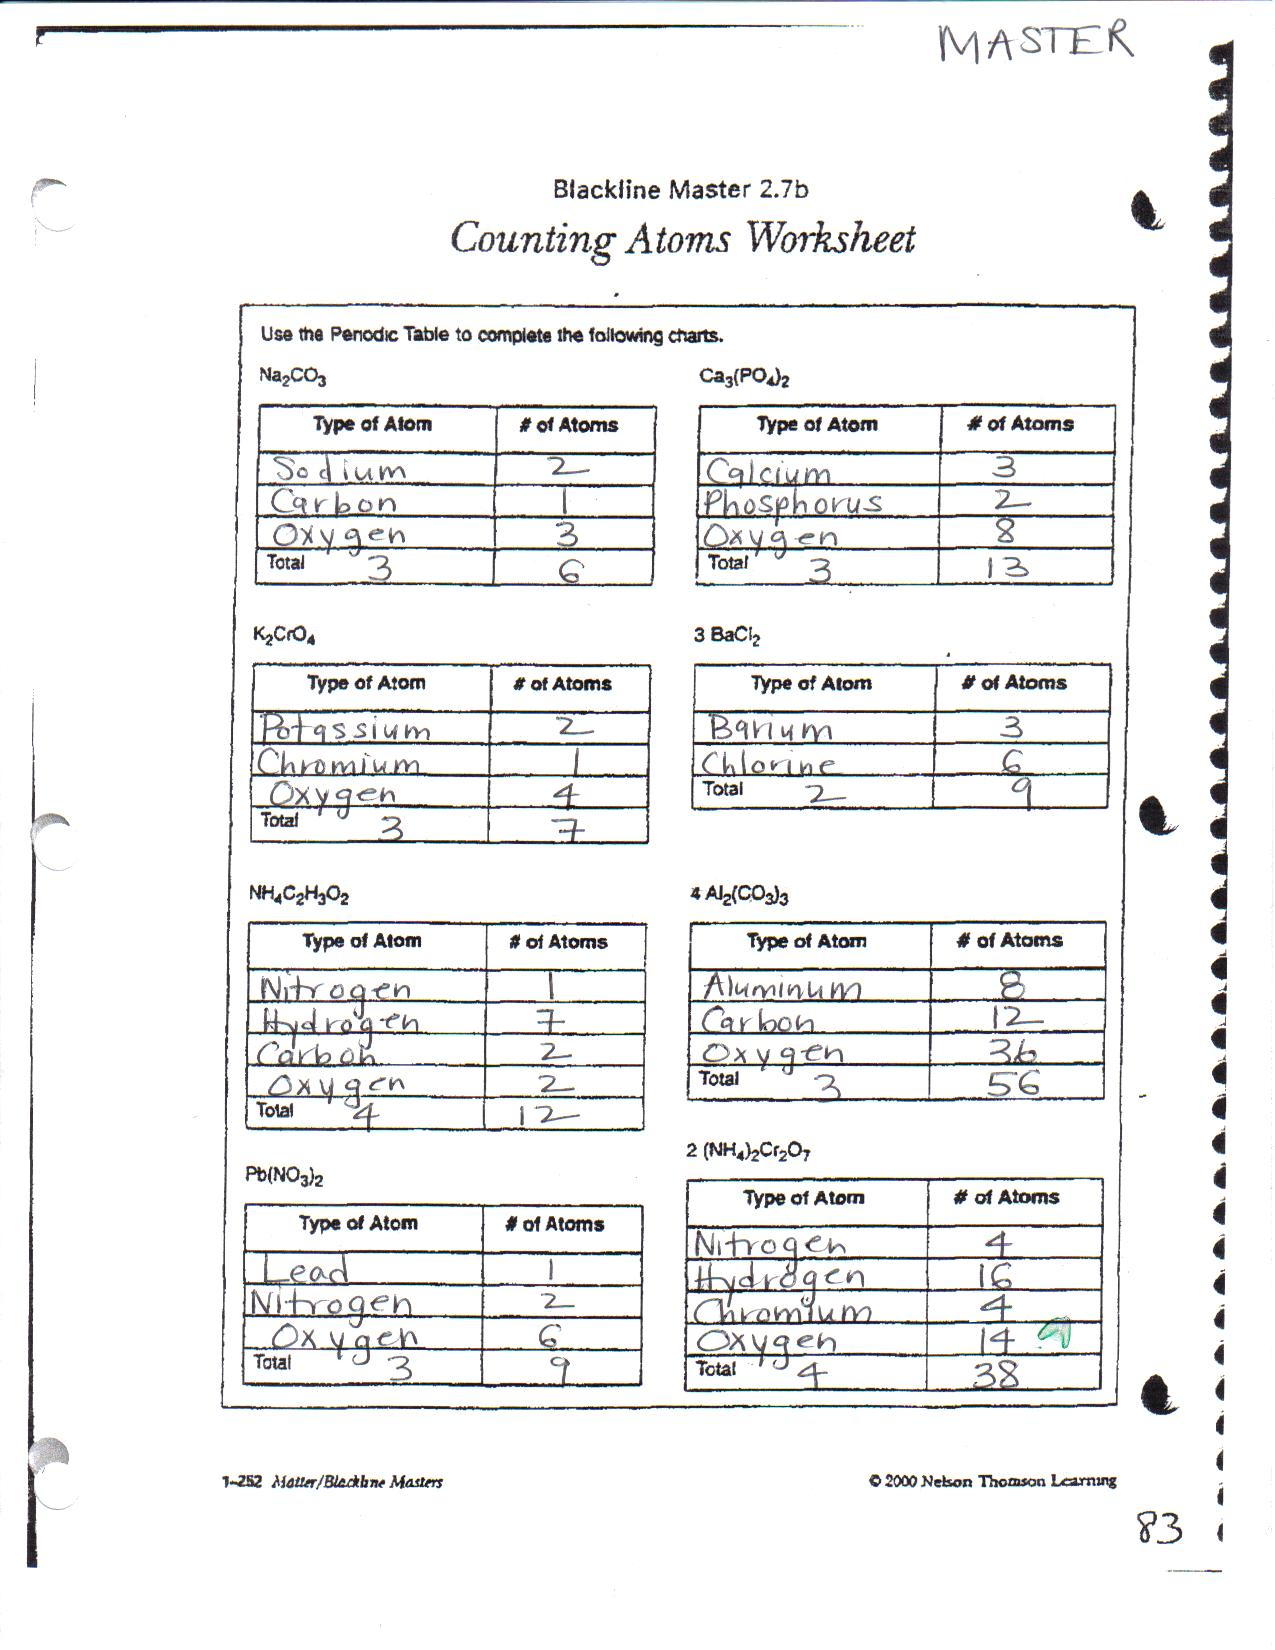 Uncategorized Counting Atoms Worksheet toxic science worksheet counting atoms